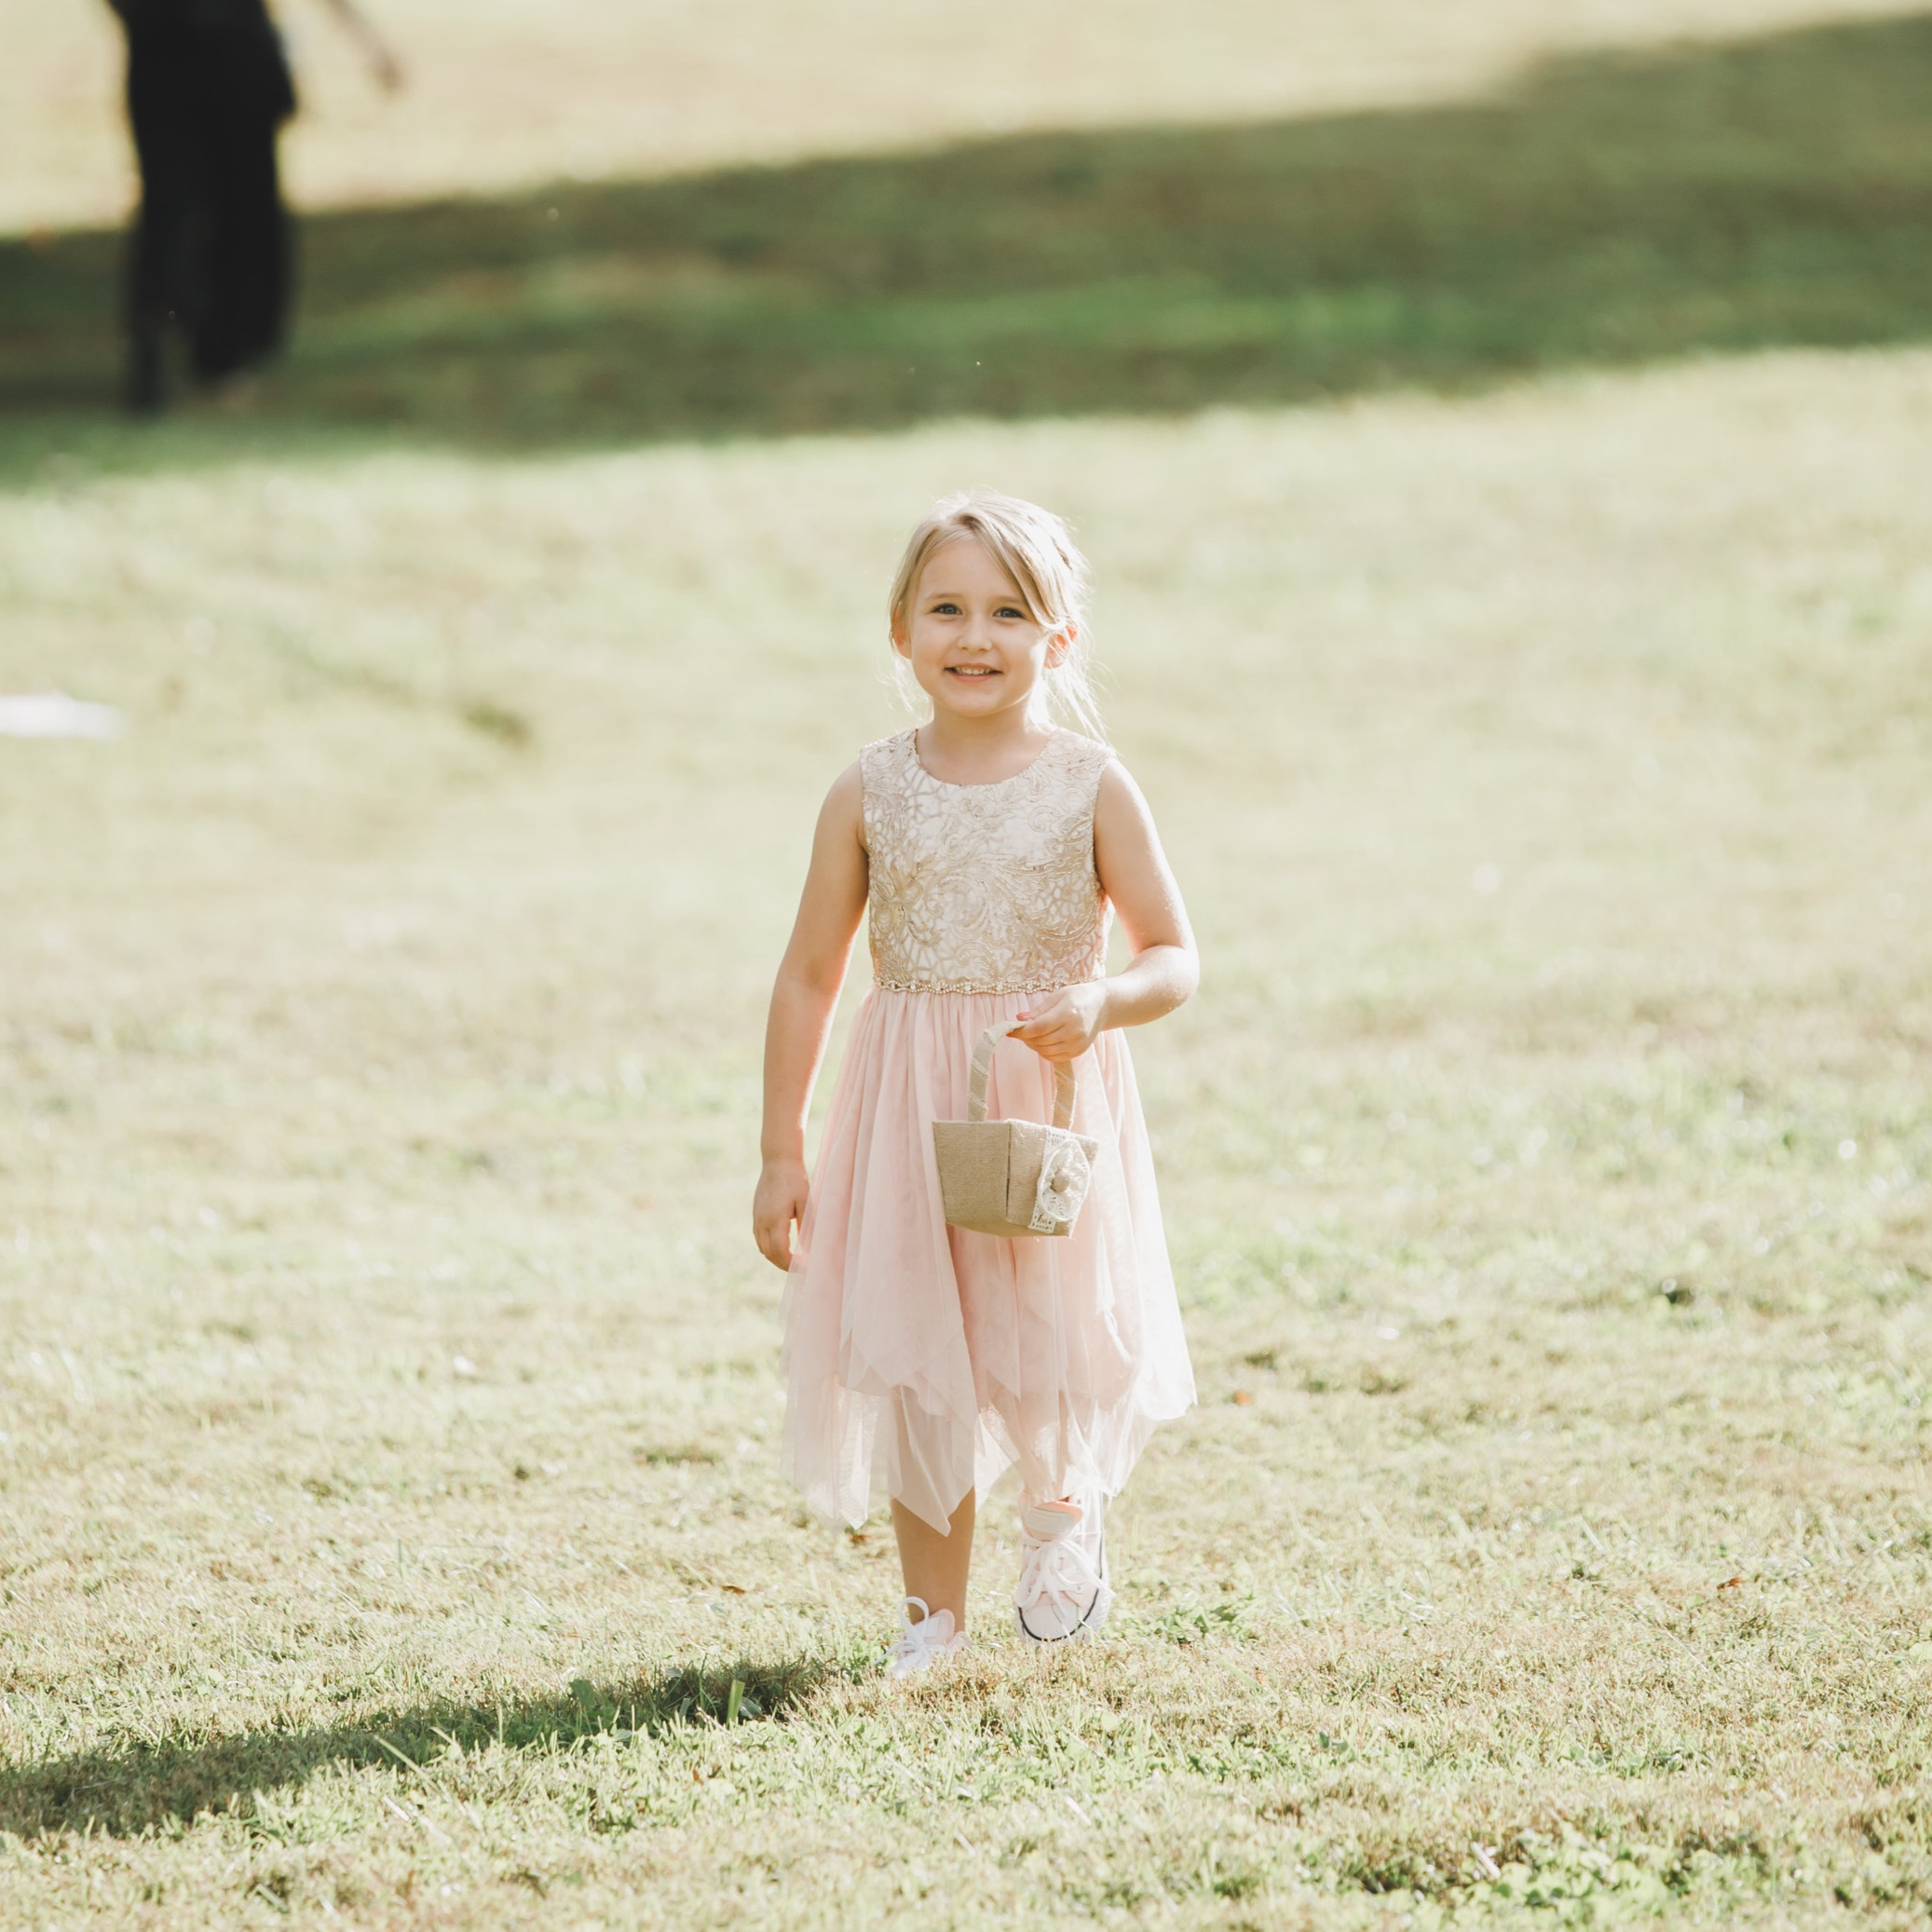 Fling - Virginia Wedding Photographer - Photography by Amy Nicole-245-24.jpg